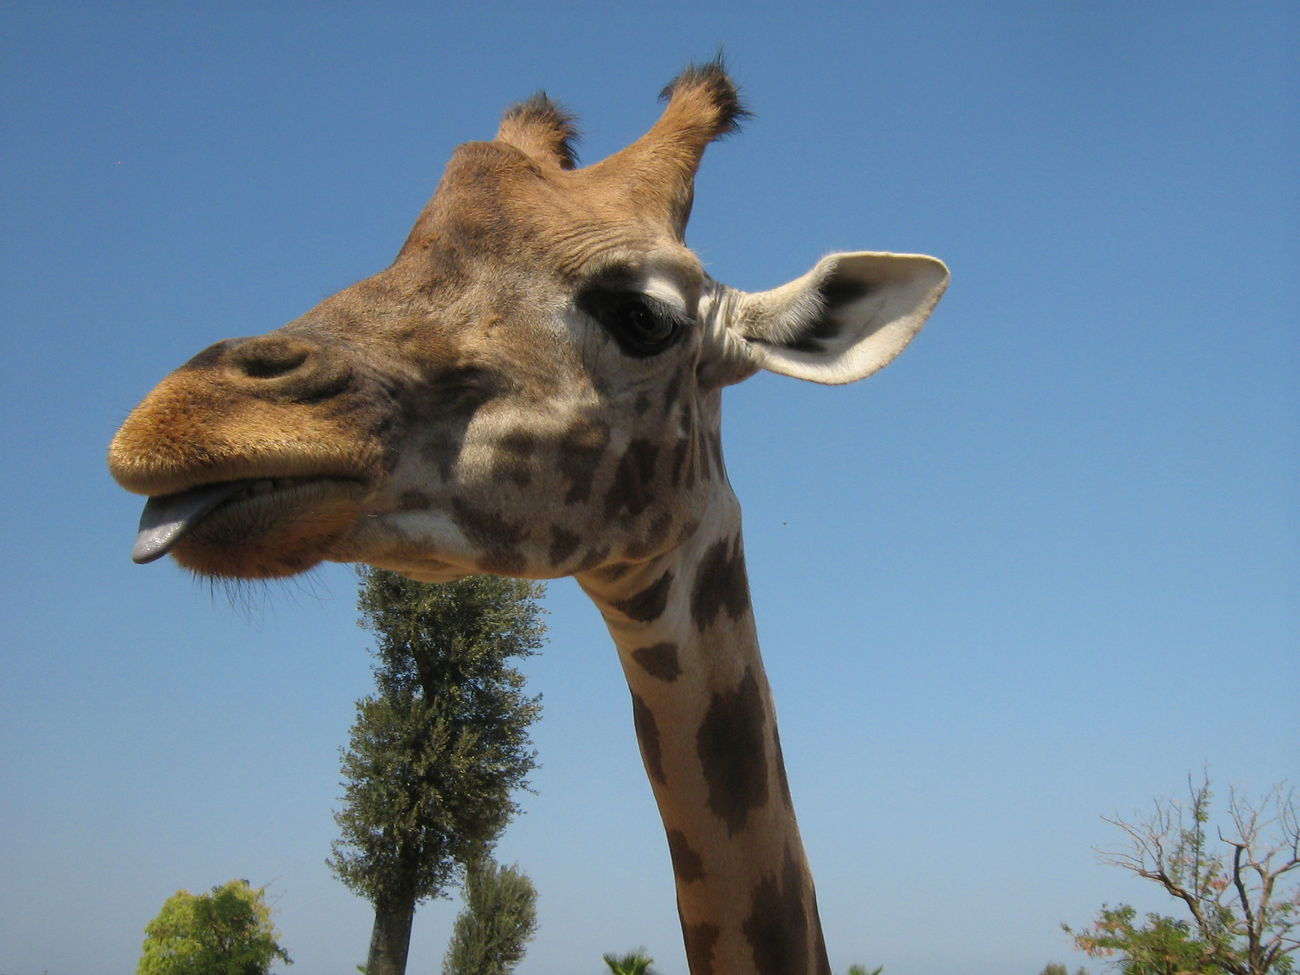 Giraffe Summer Animal Tongue Out Funny Anımals Longneck